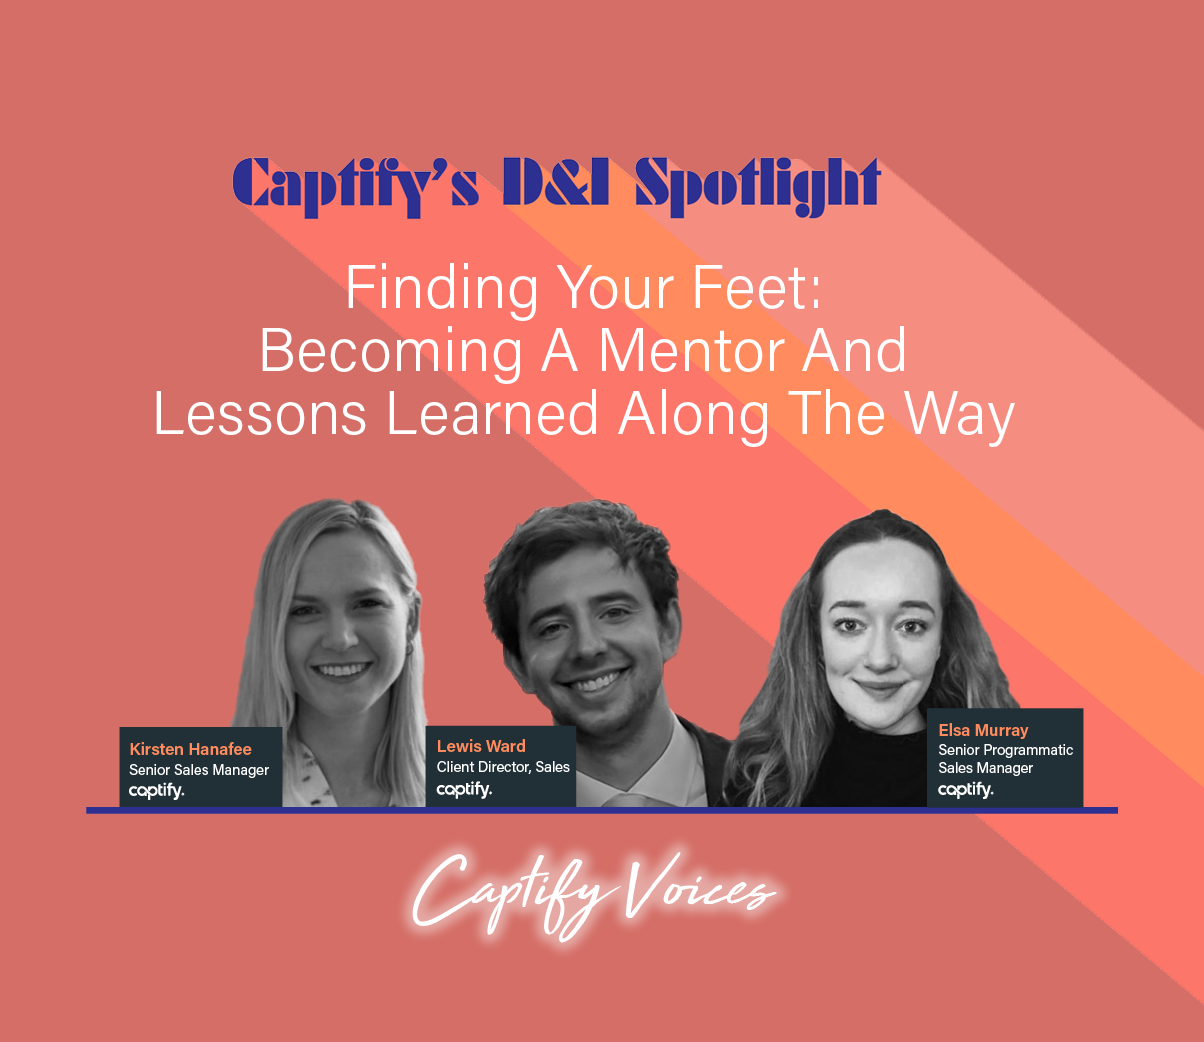 Finding Your Feet: Becoming A Mentor And Lessons Learned Along The Way